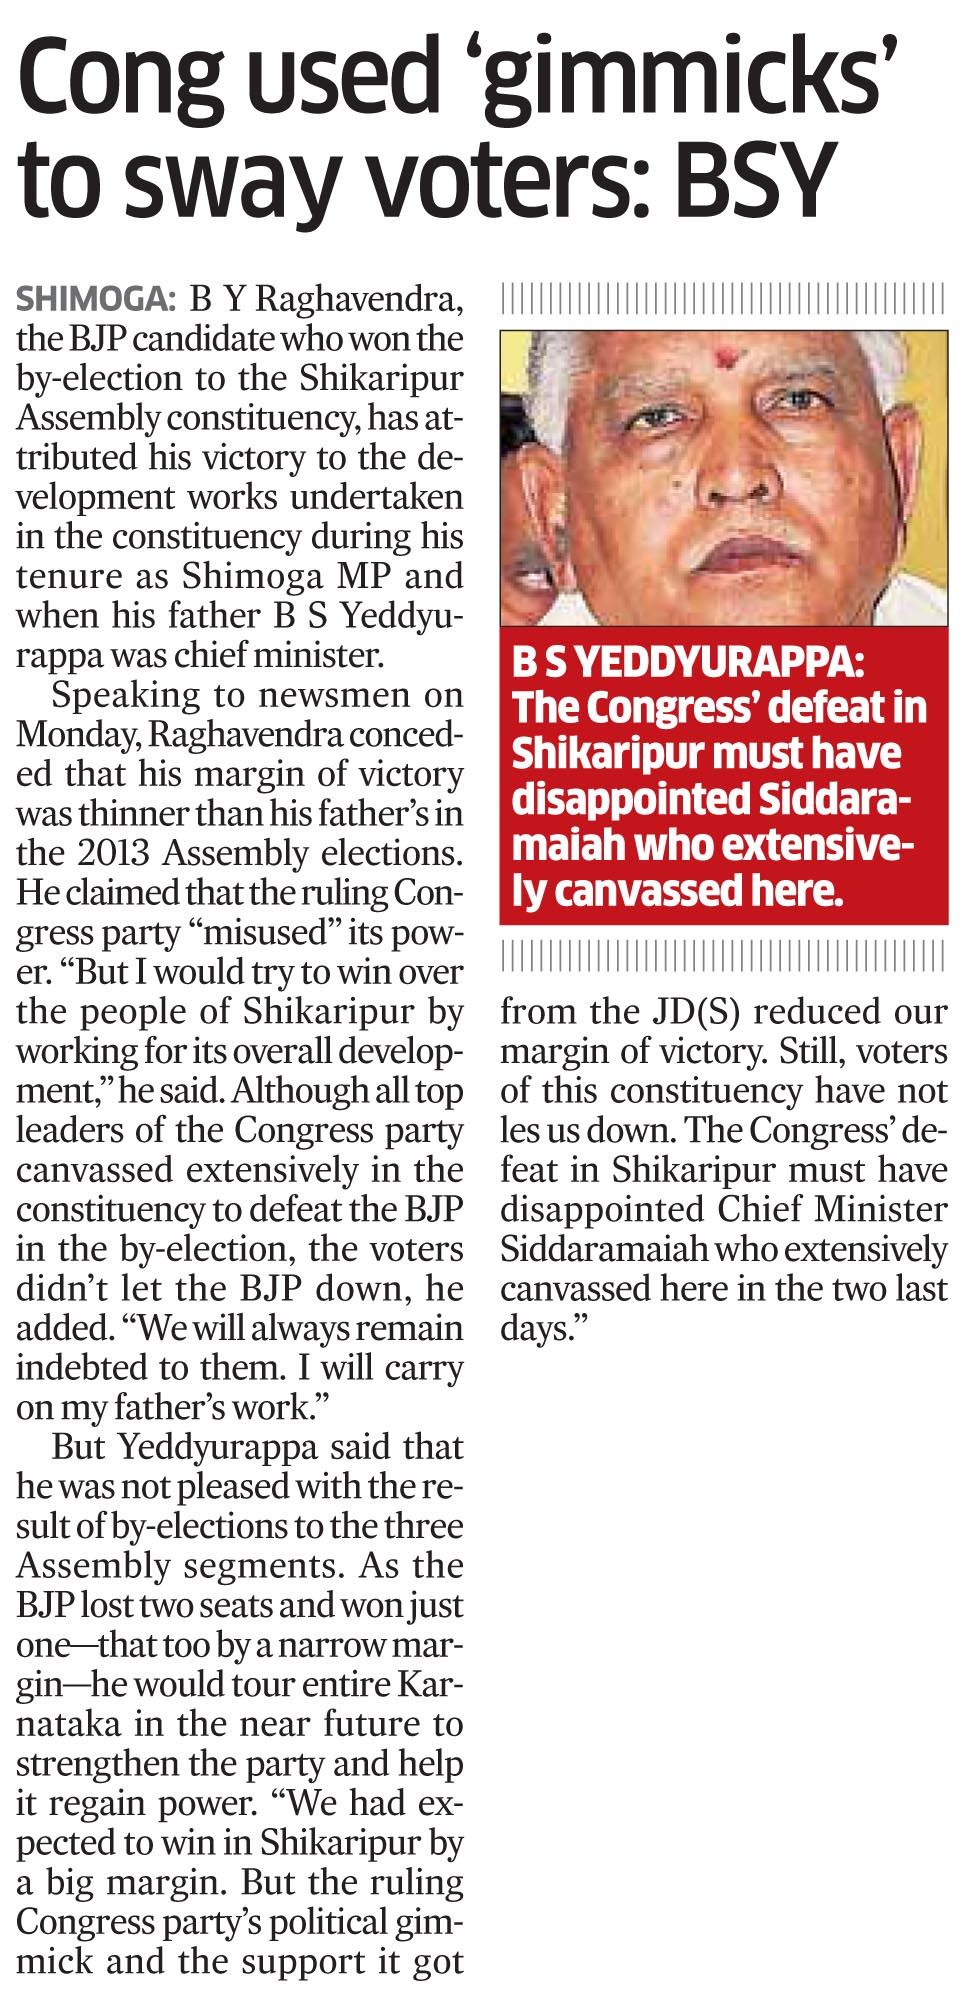 Deccan Herald 26-08-2014, Page 5